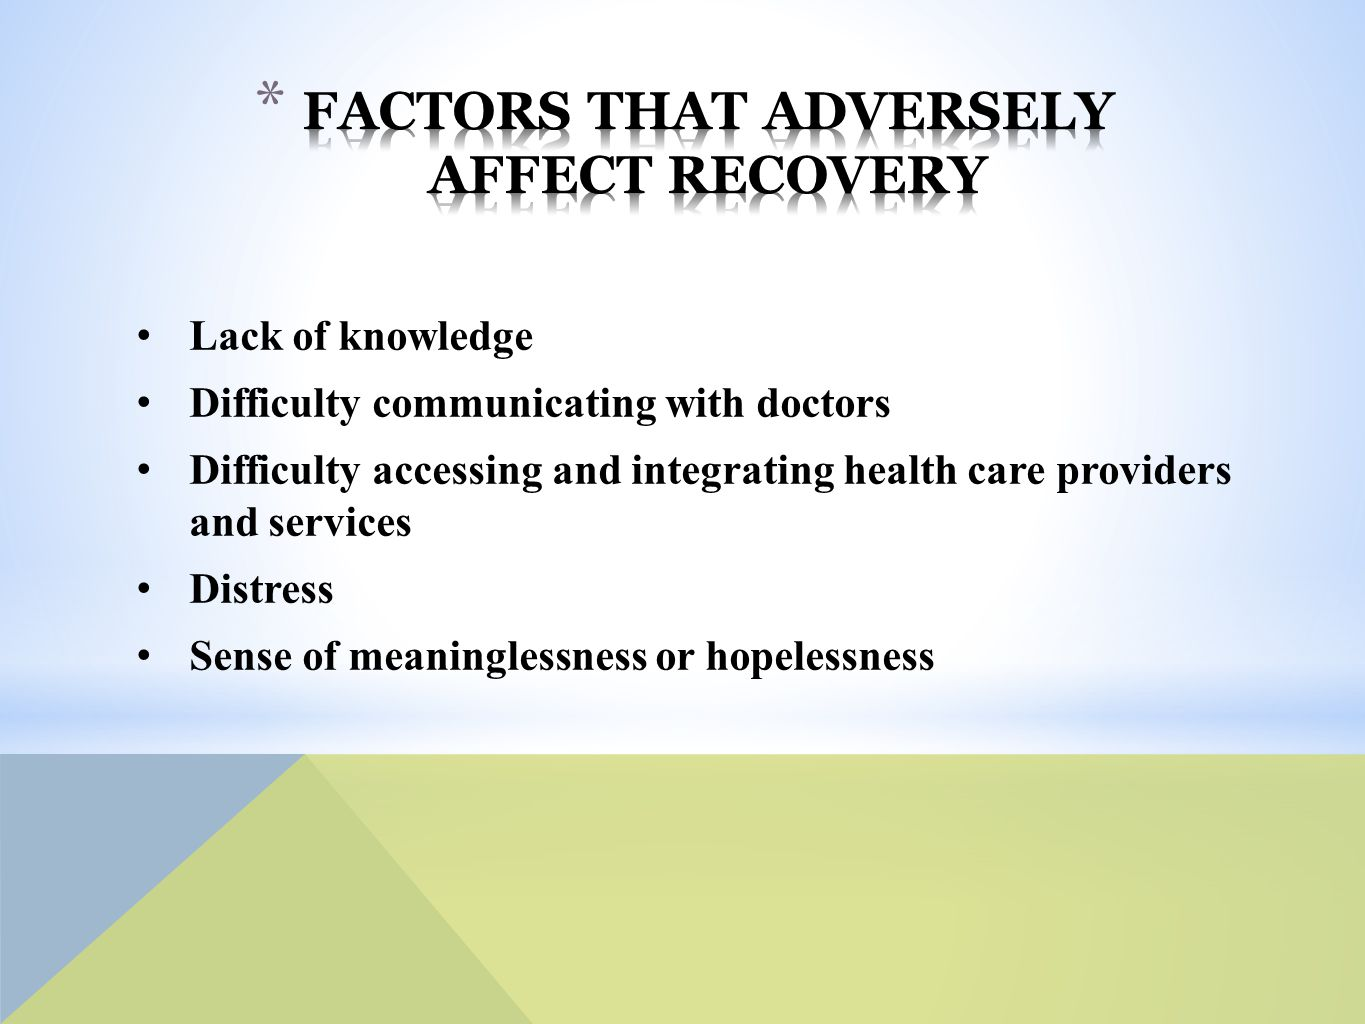 Lack of knowledge Difficulty communicating with doctors Difficulty accessing and integrating health care providers and services Distress Sense of meaninglessness or hopelessness